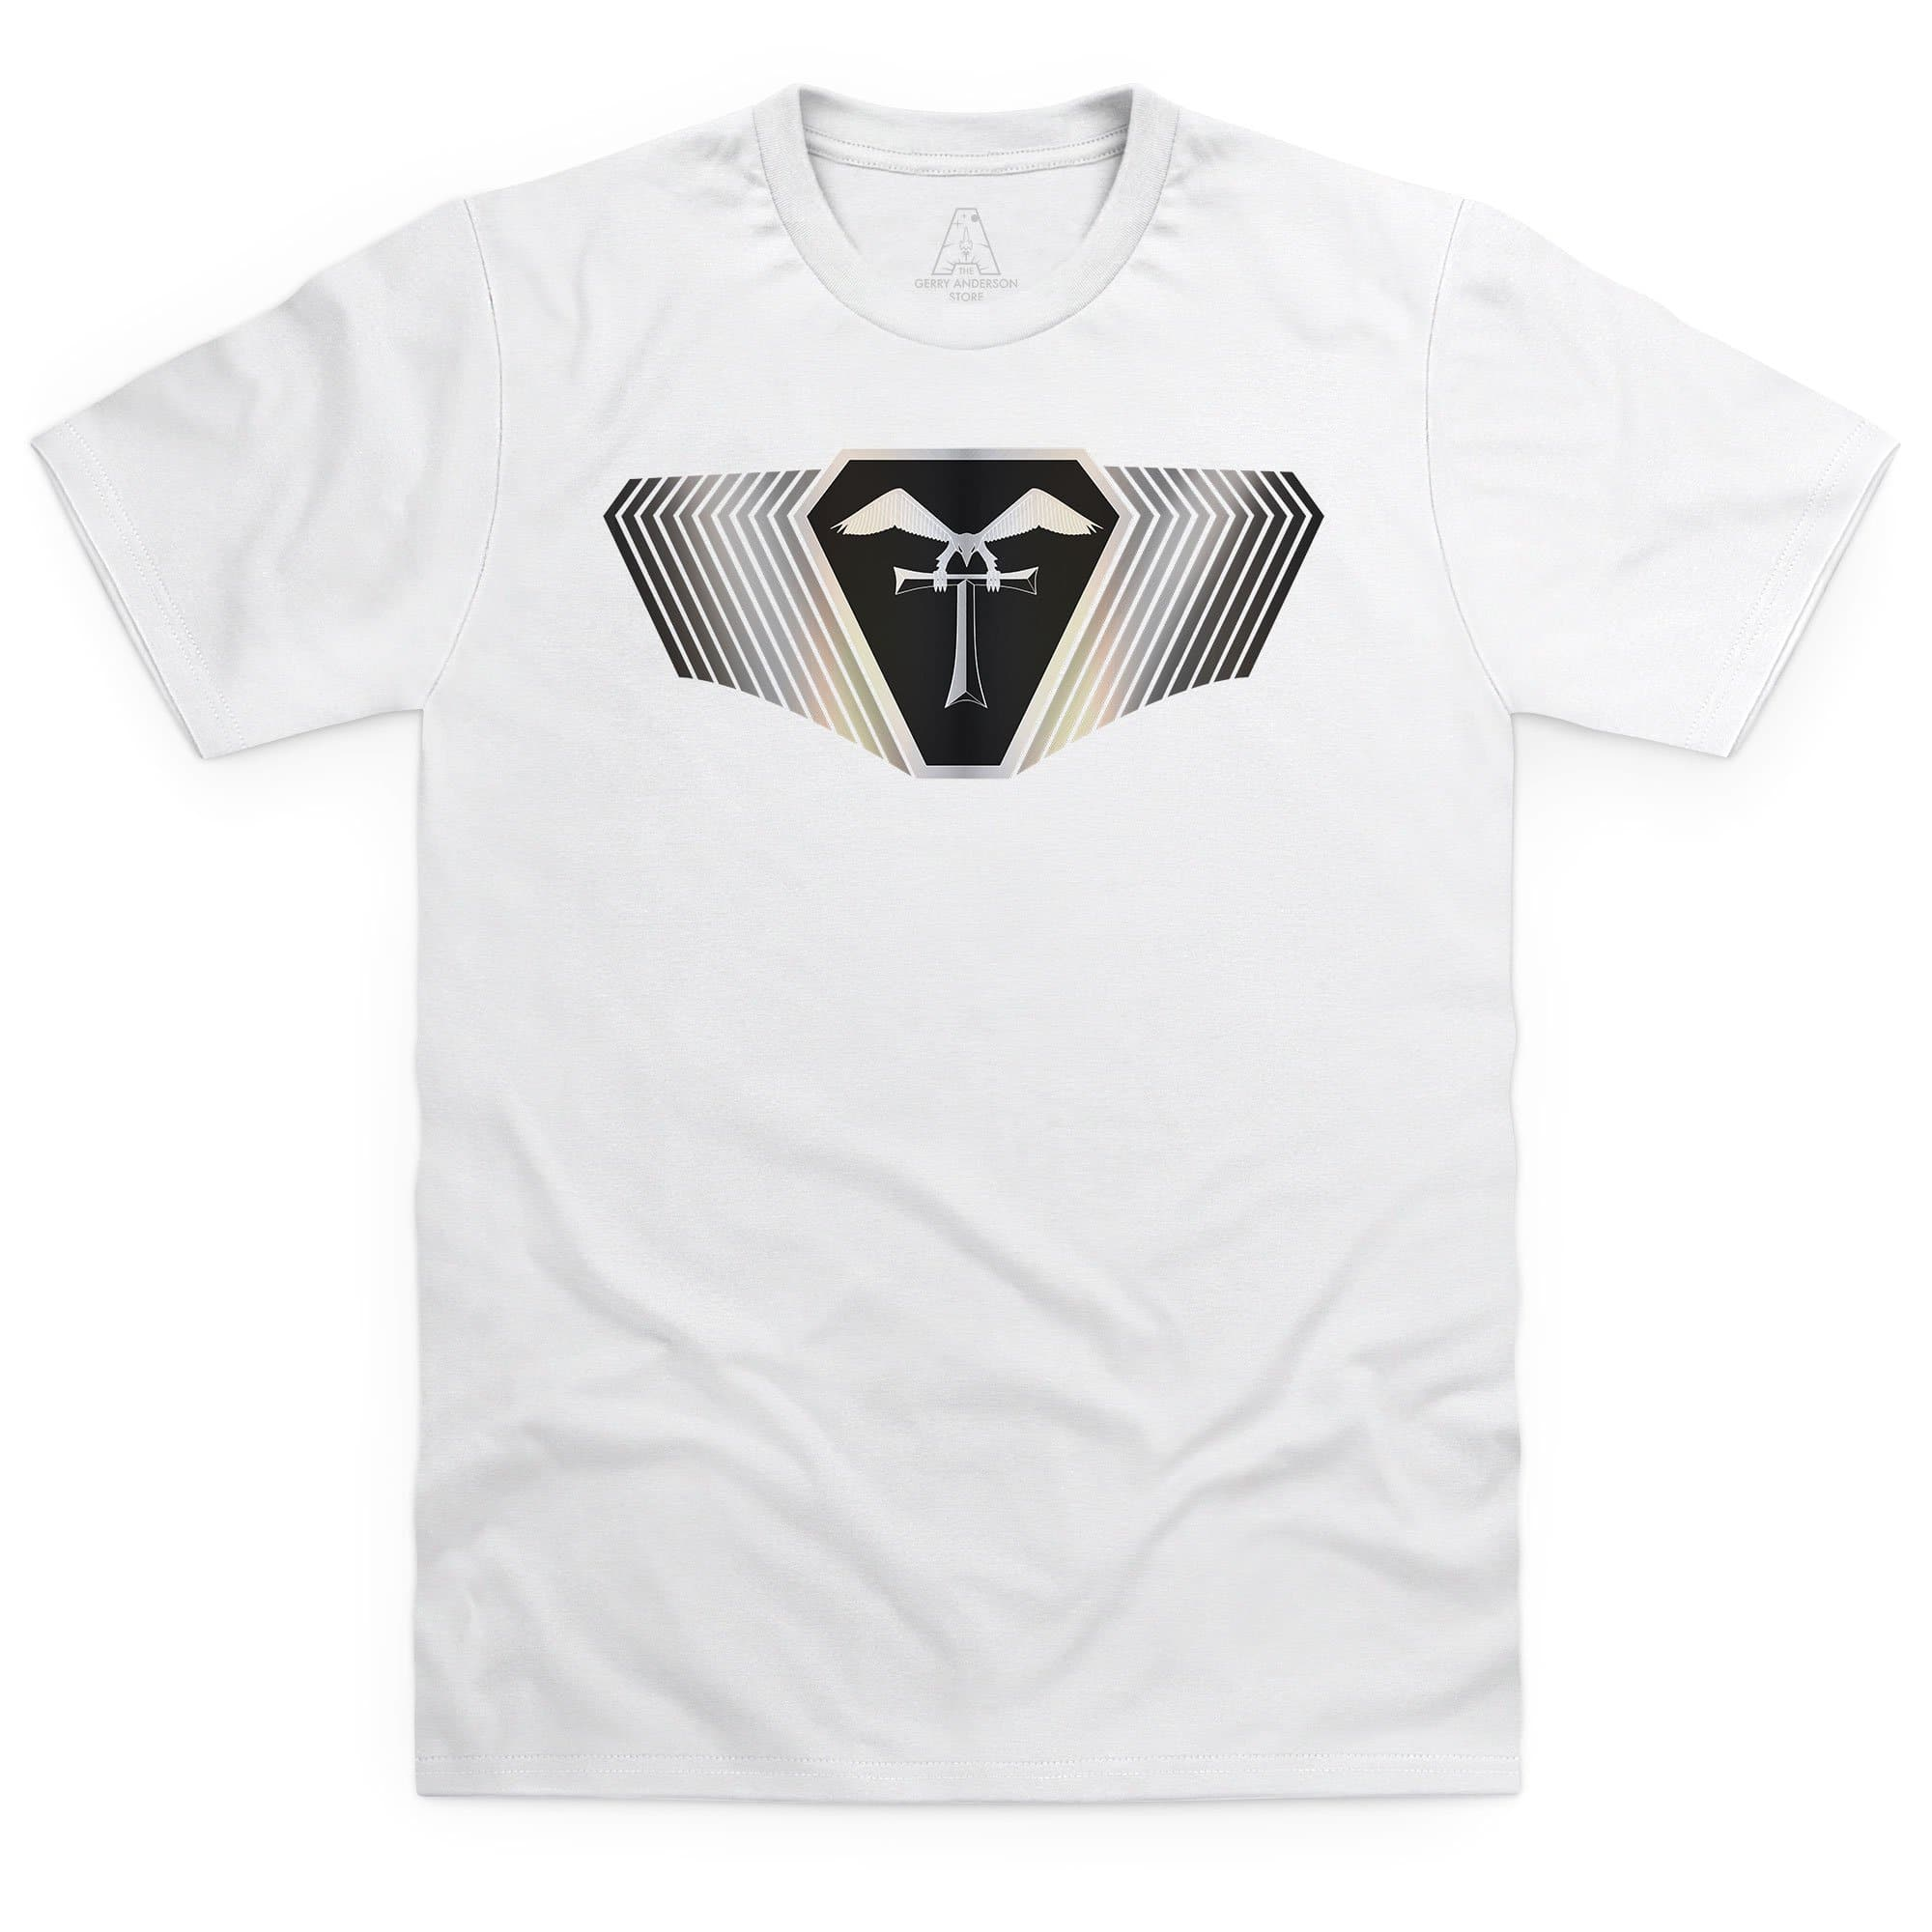 Terrahawks Silver Emblem Men's White T-Shirt [Official & Exclusive]